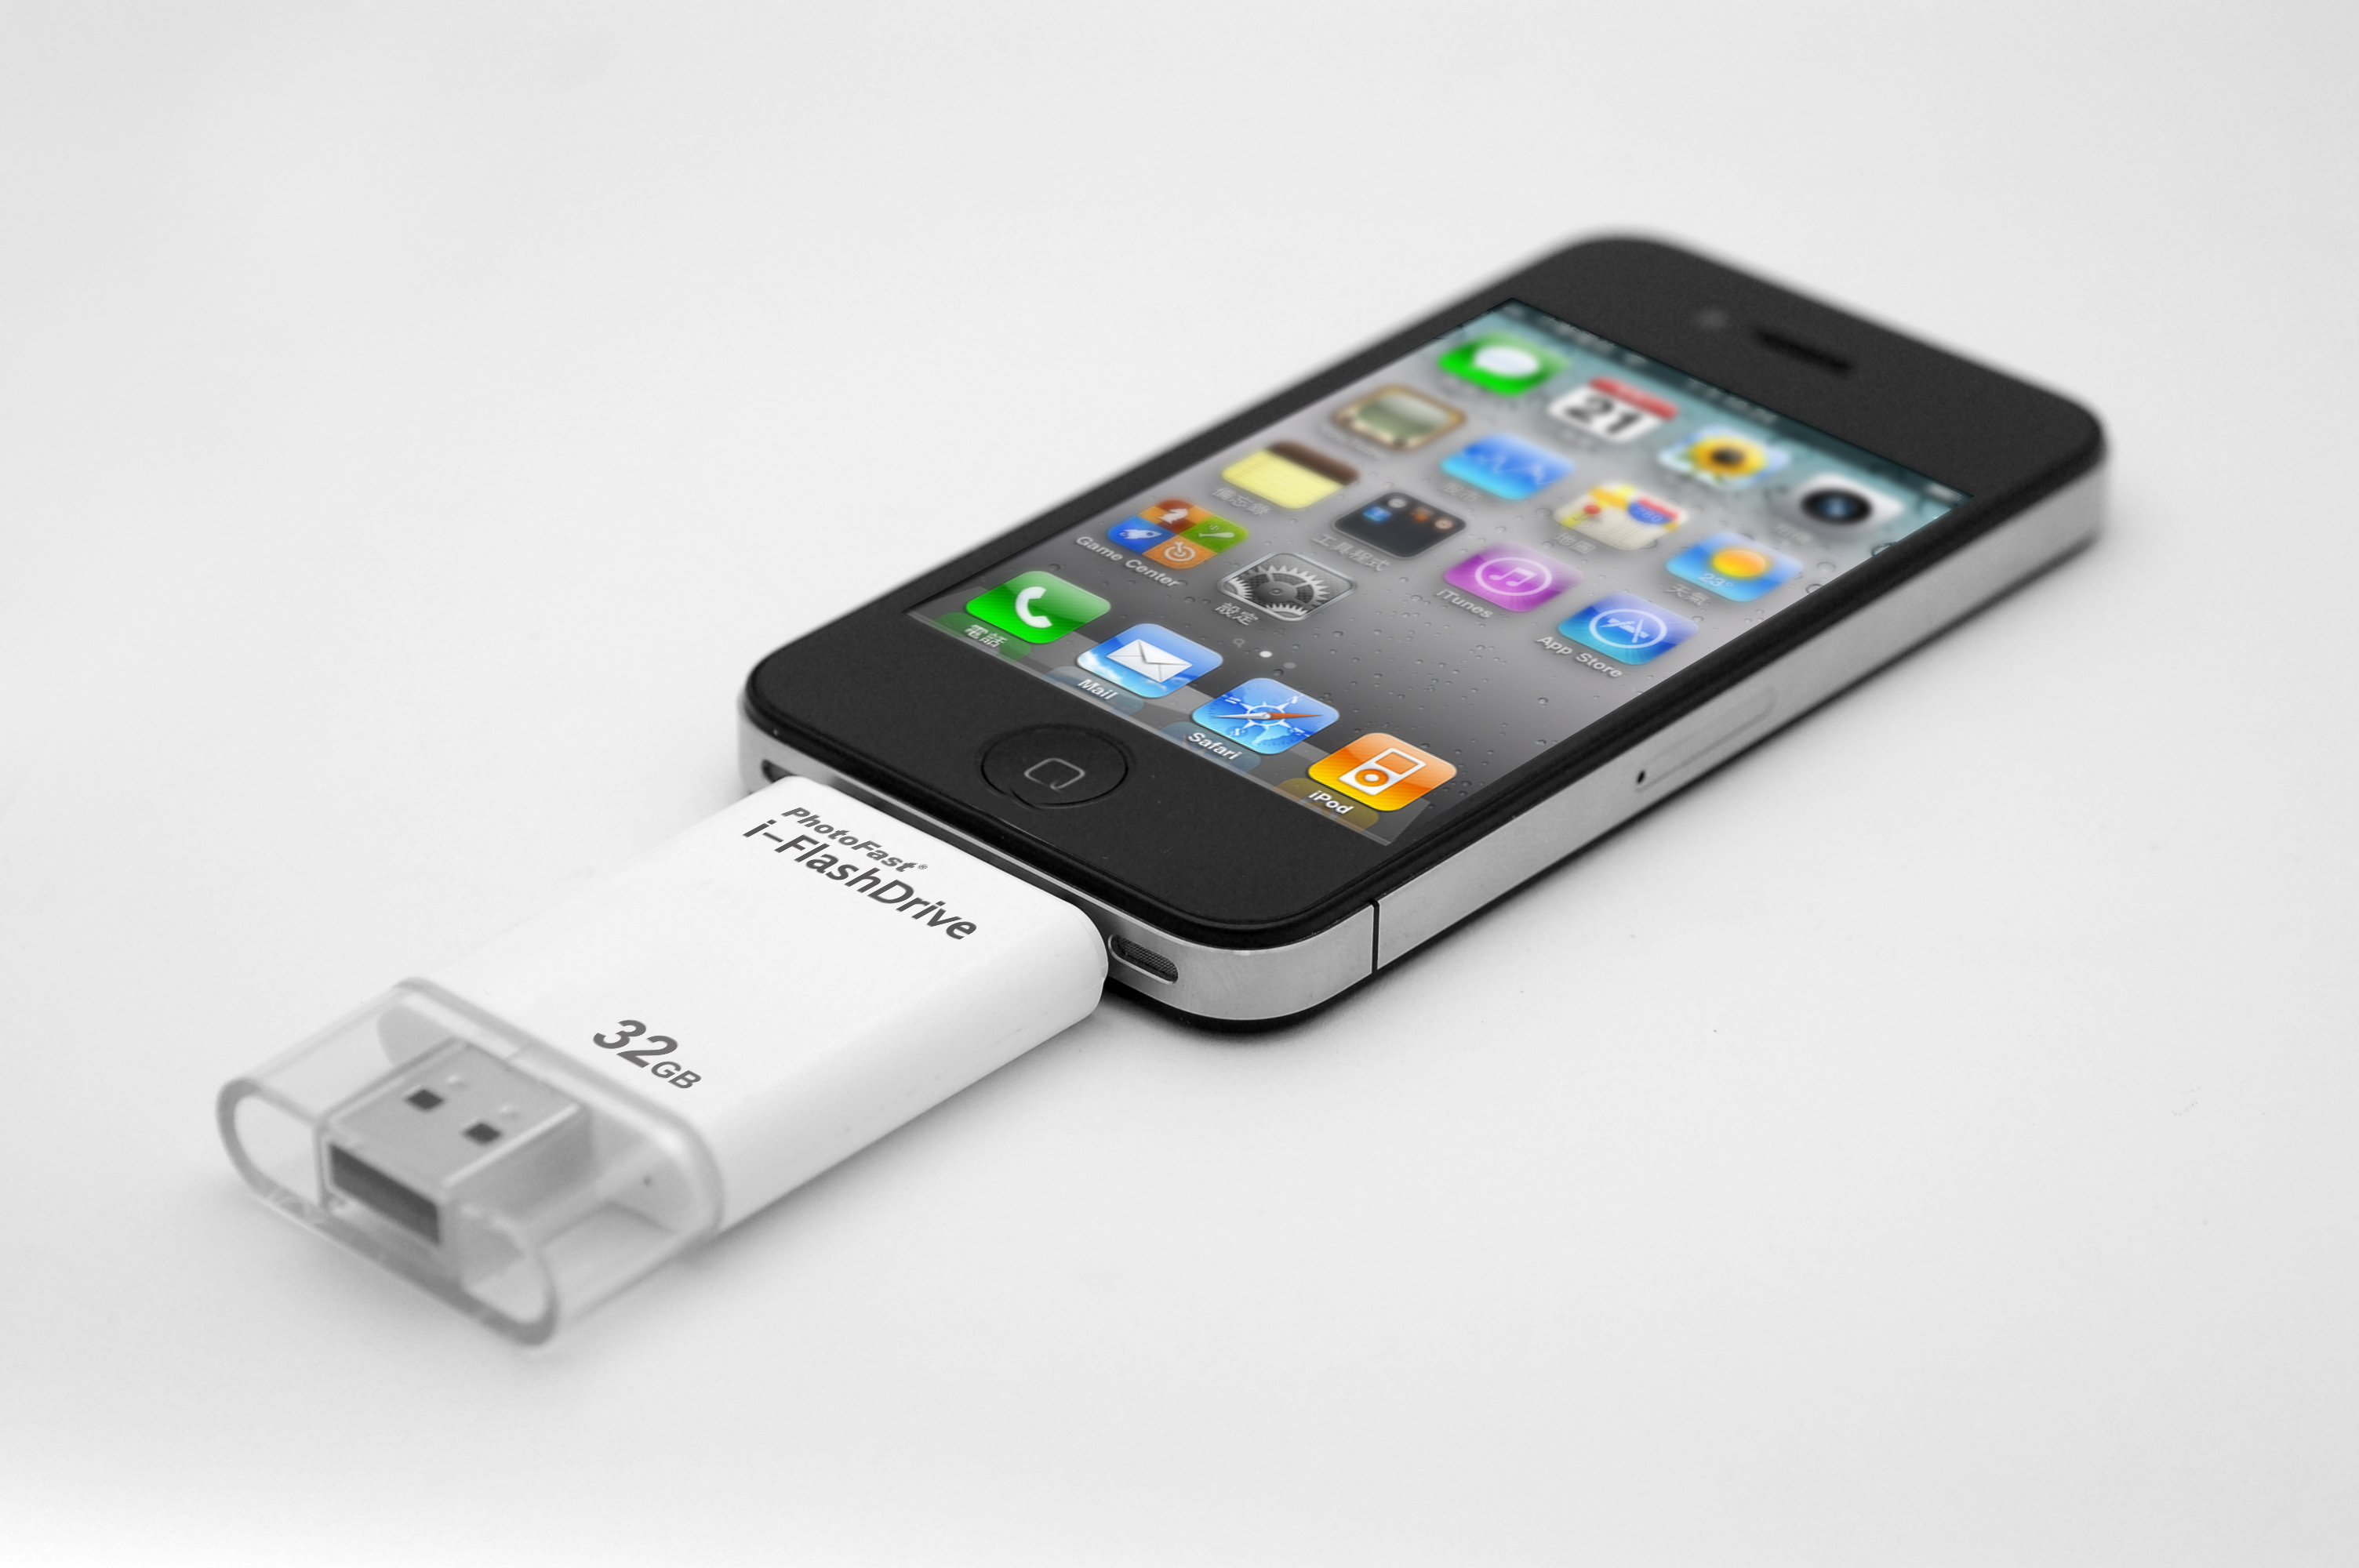 Portable Iphone Storage : Iphone memory card